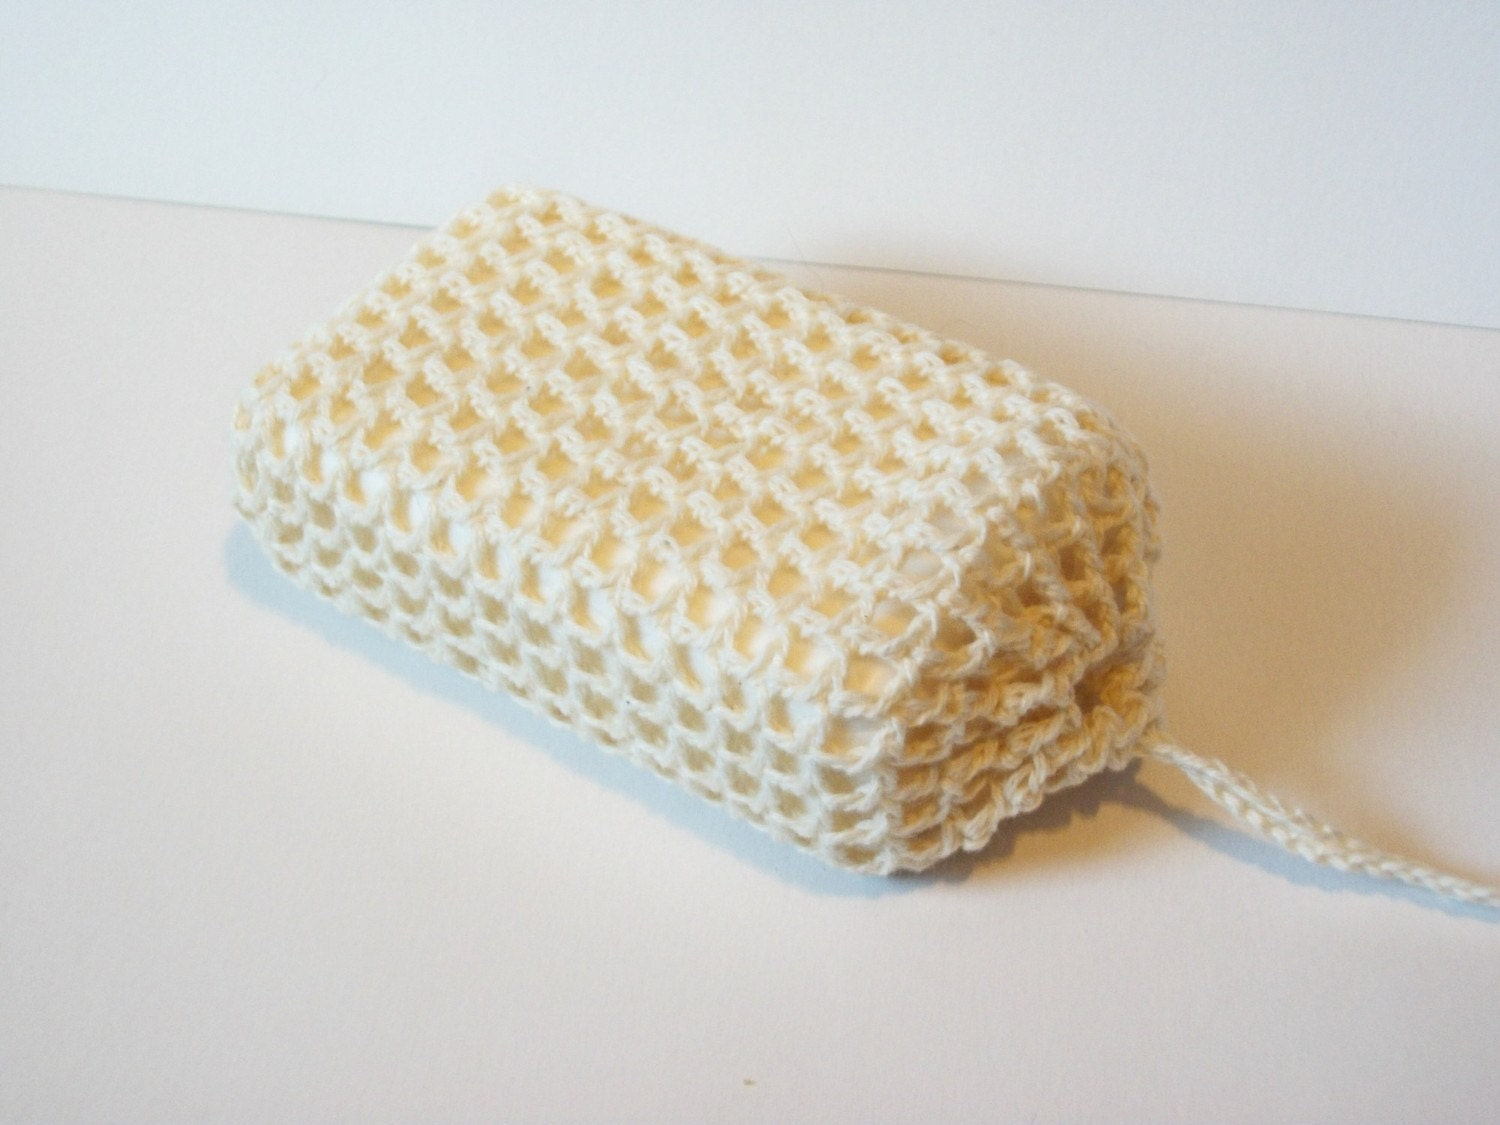 Cute Little Crafts: Crochet Net Soap Saver and Body Scrubber